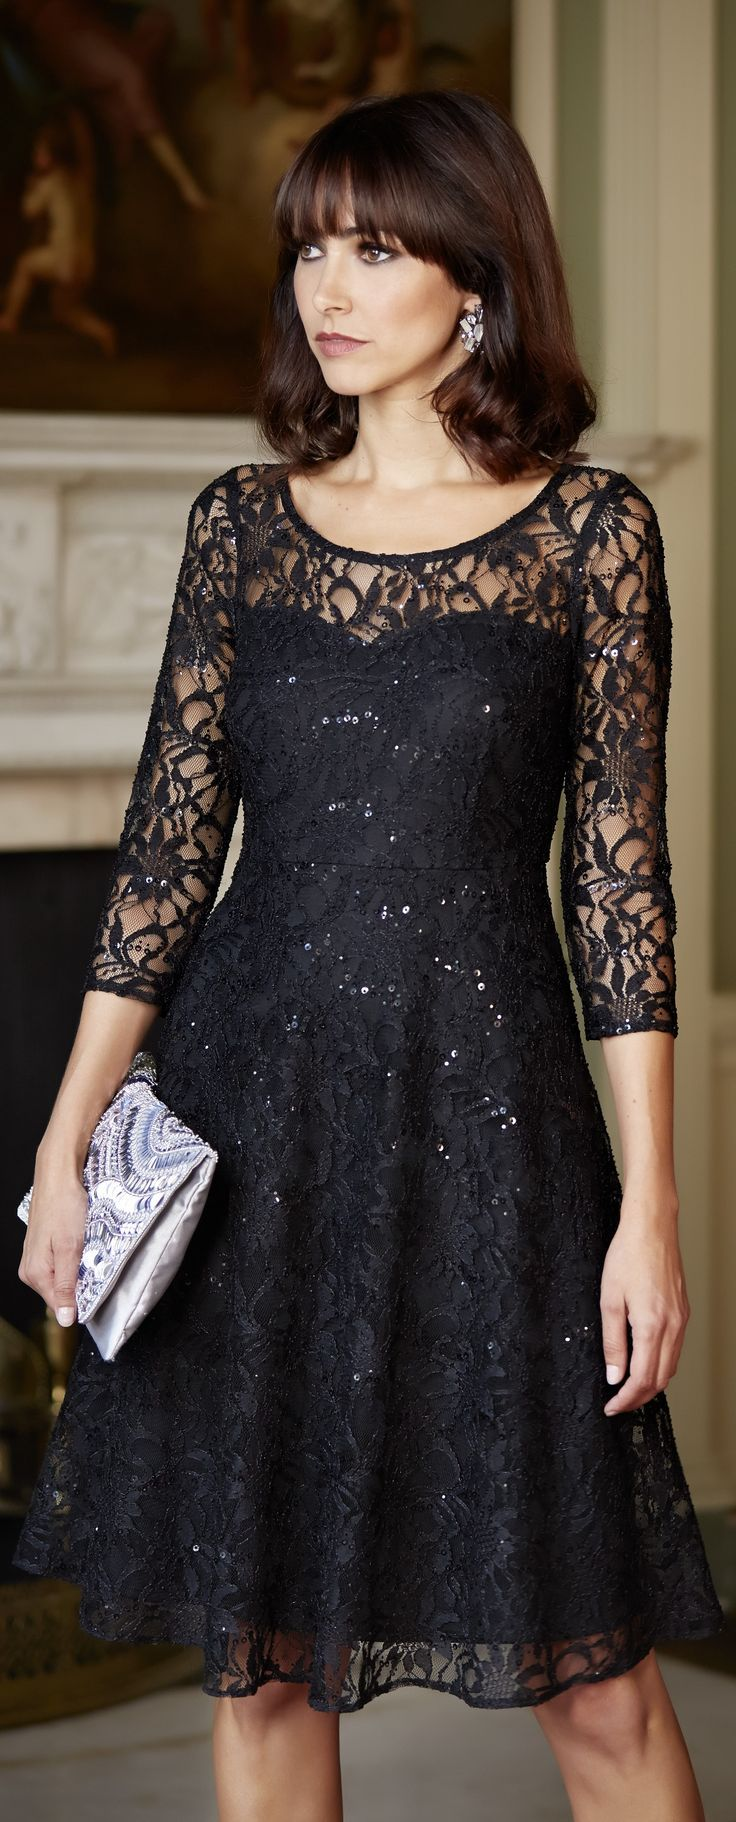 Little black dress perfect for a fall wedding. Easy to